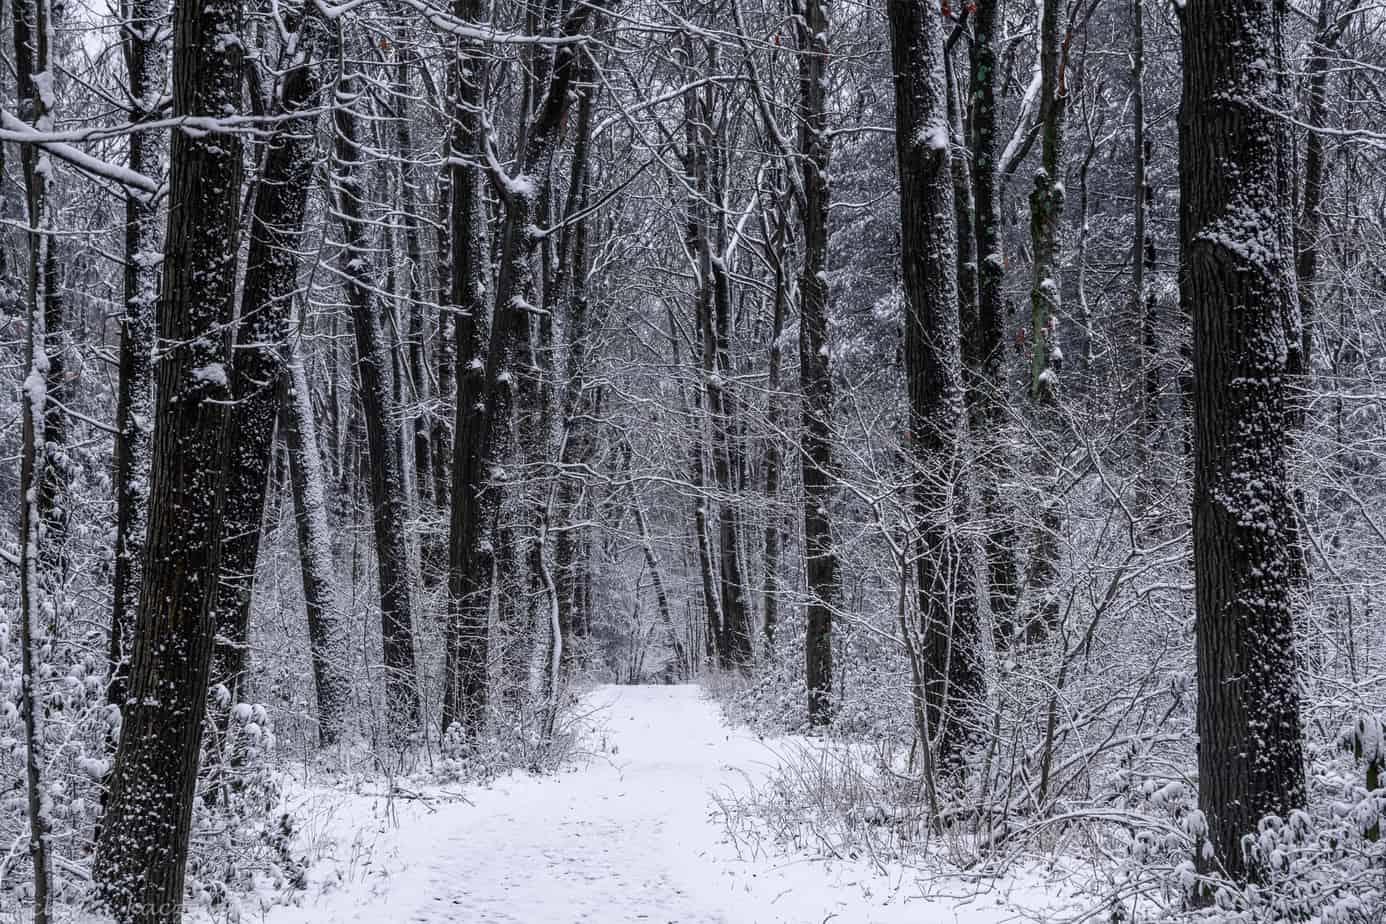 A winter woodland scene of snow covered trees